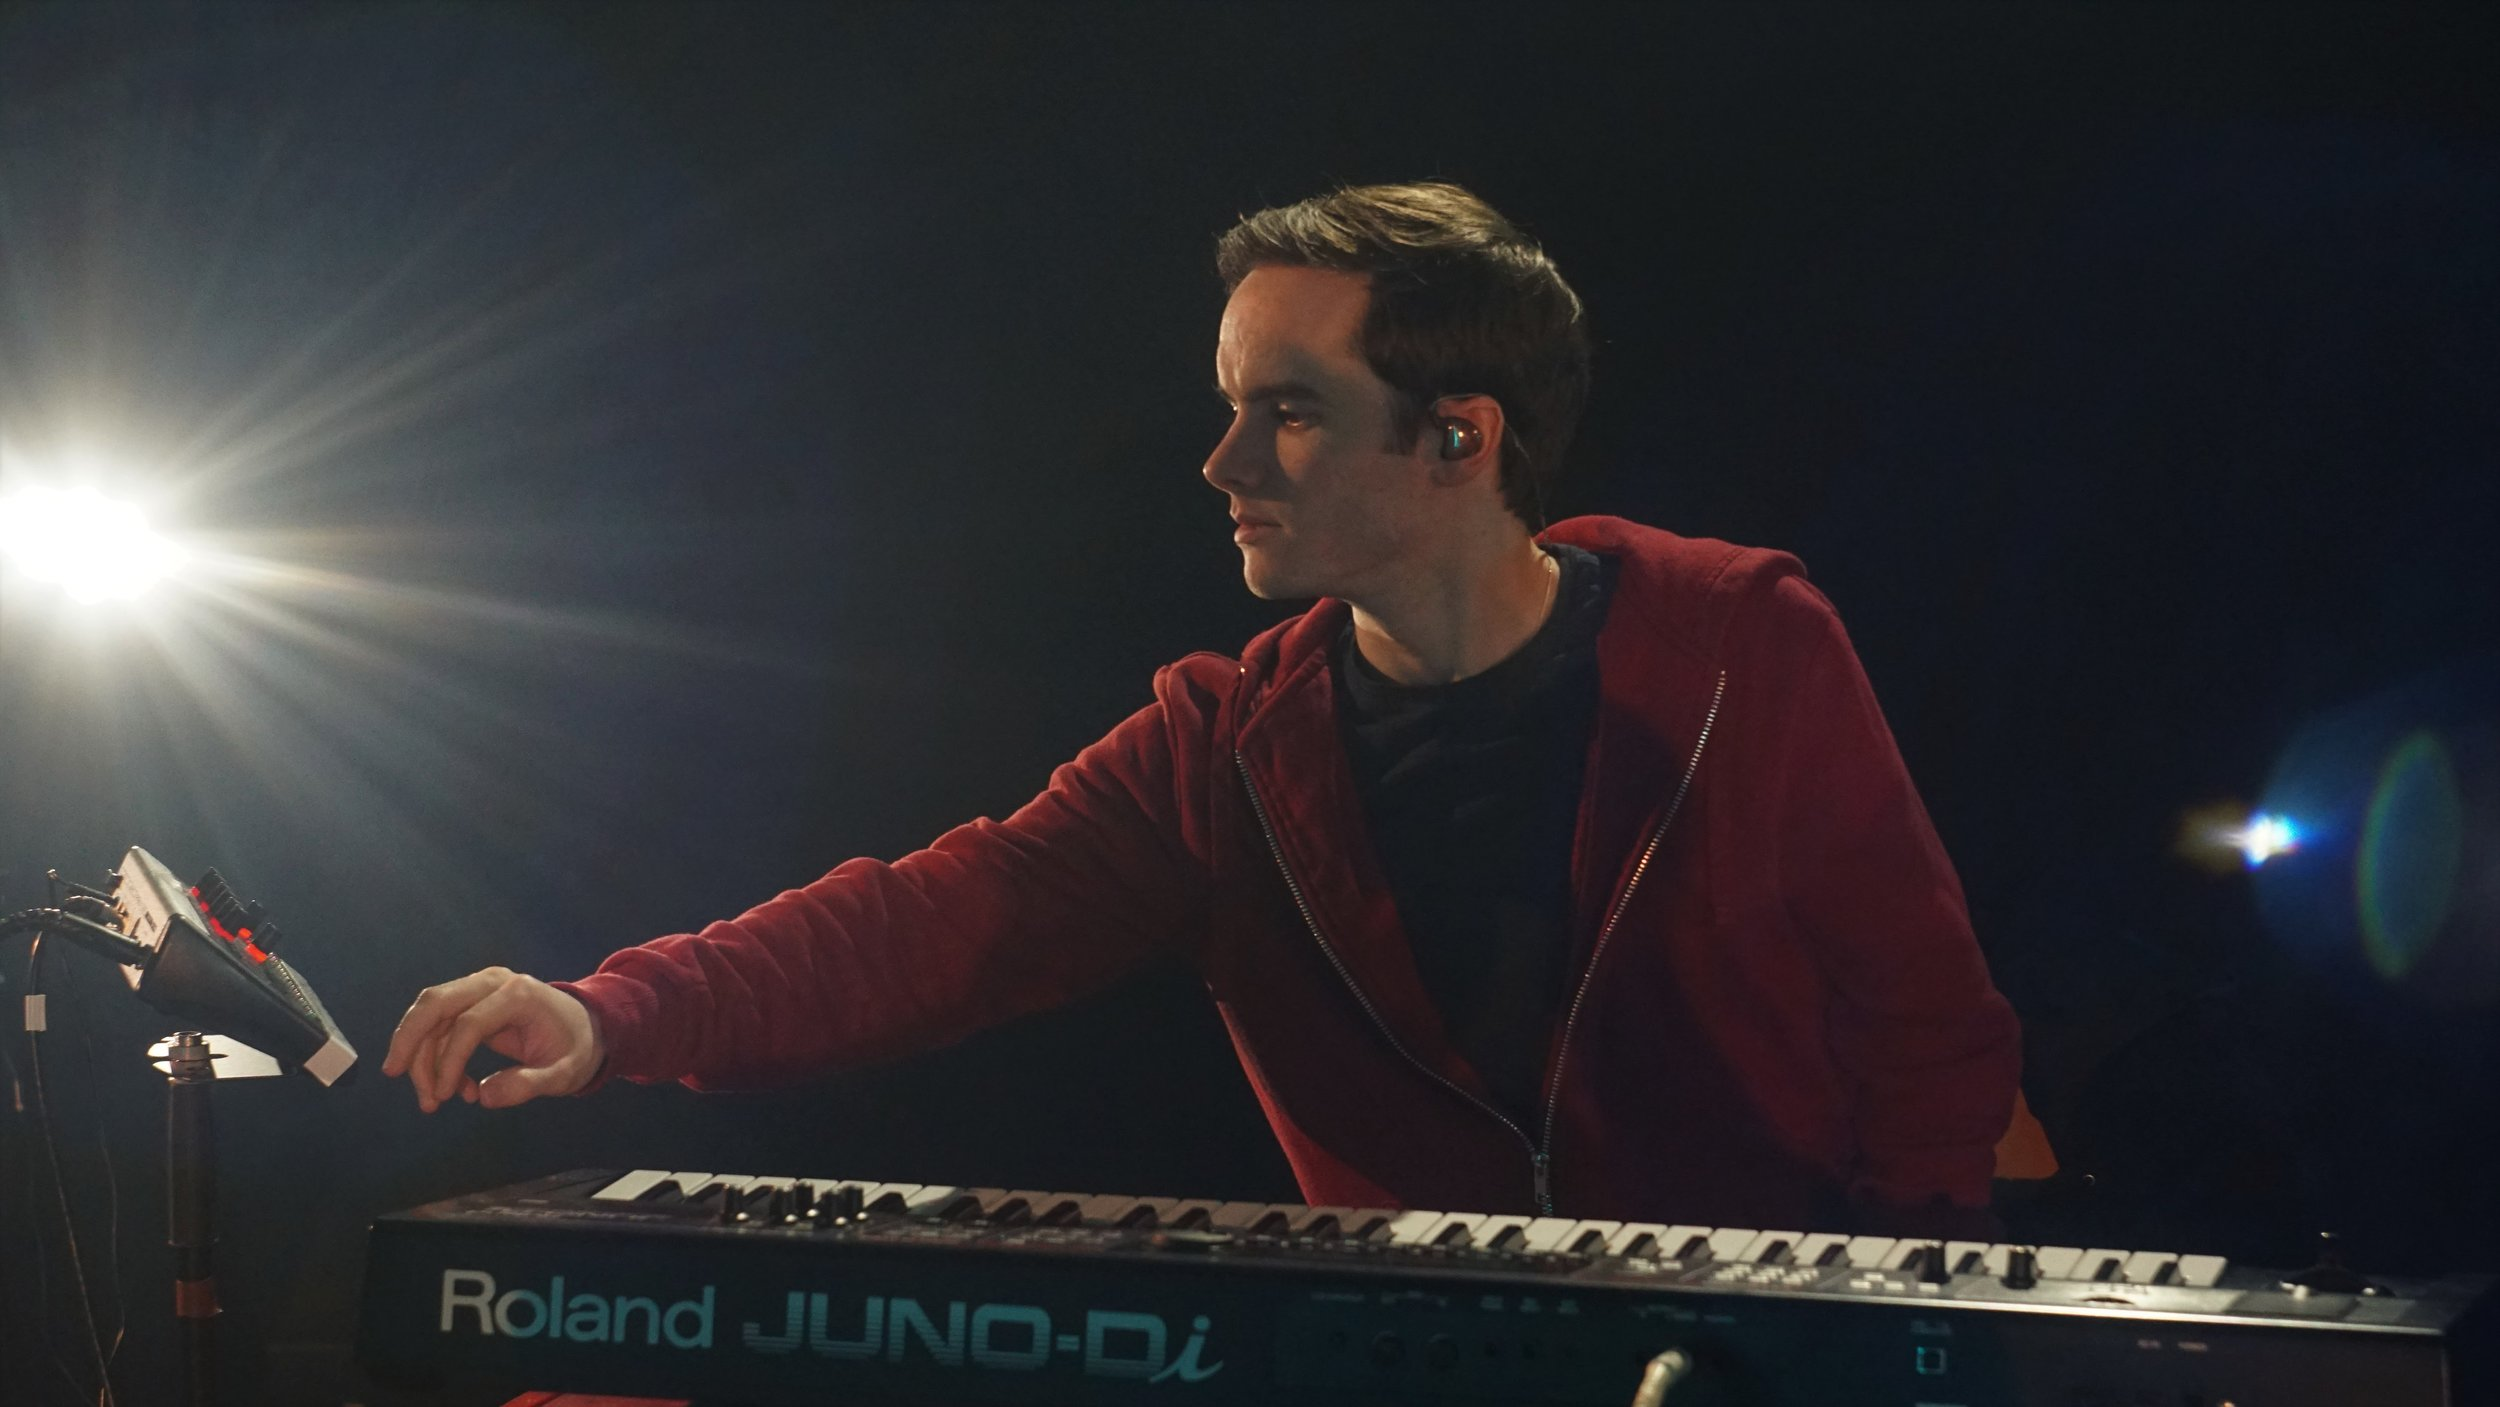 And yes, that is my lovely new Roland Juno Di - thanks for asking. Photo by Delilah Niel